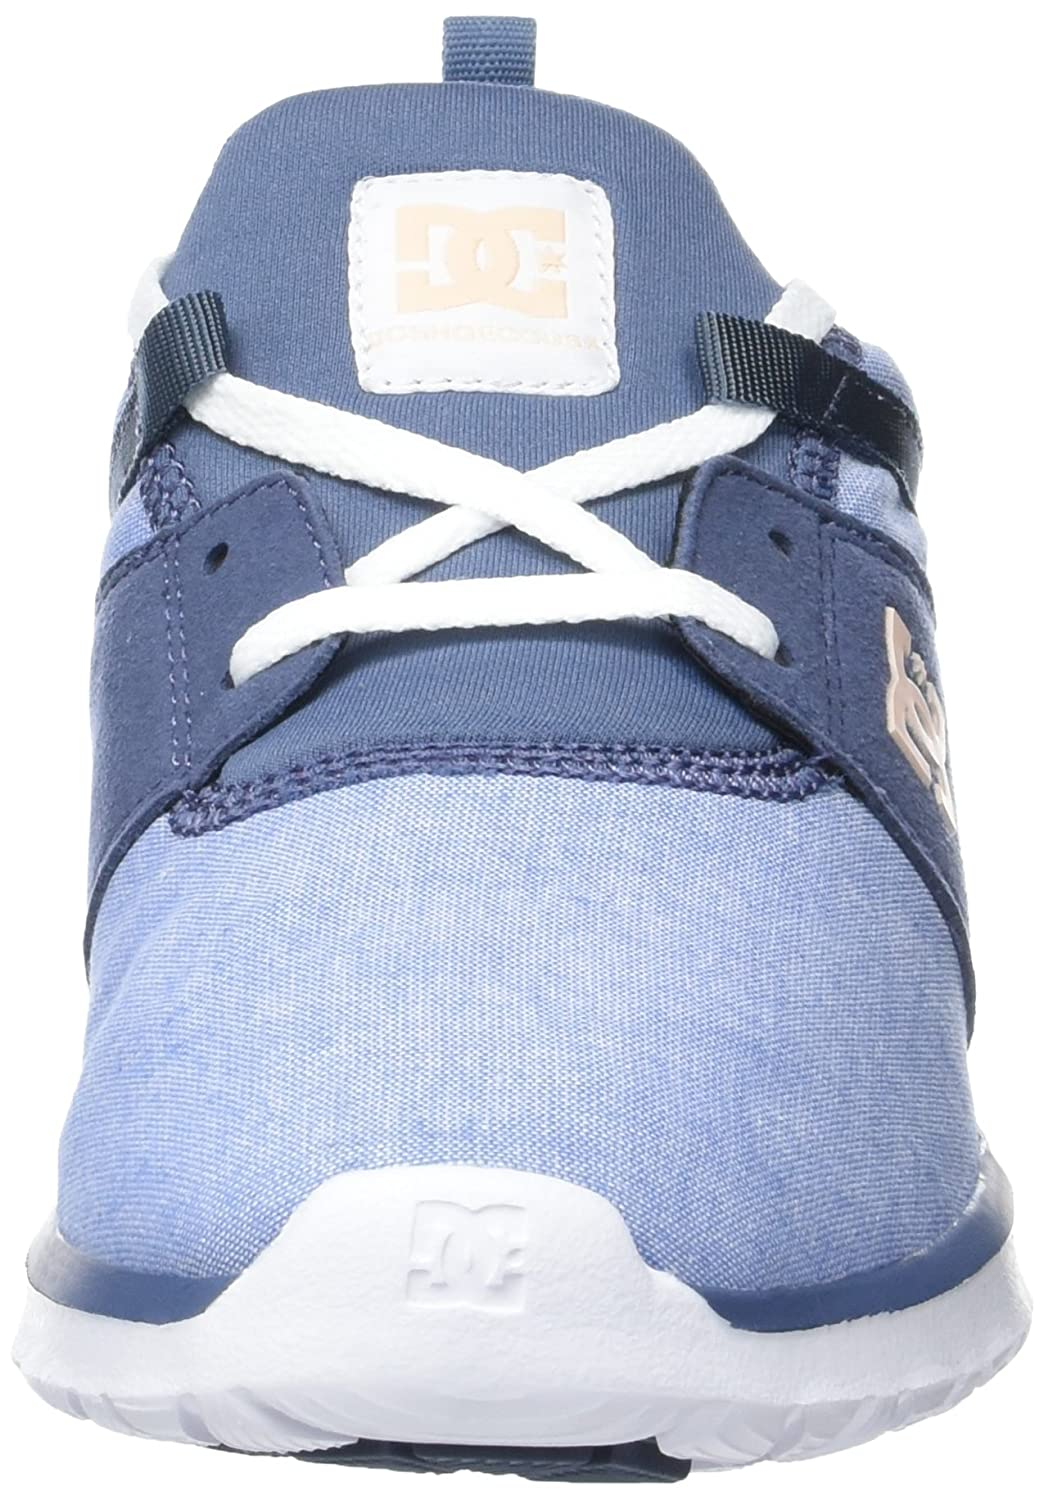 DC schuhe Damen Heathrow Heathrow Heathrow Se Flach blau 36 EU c8e198